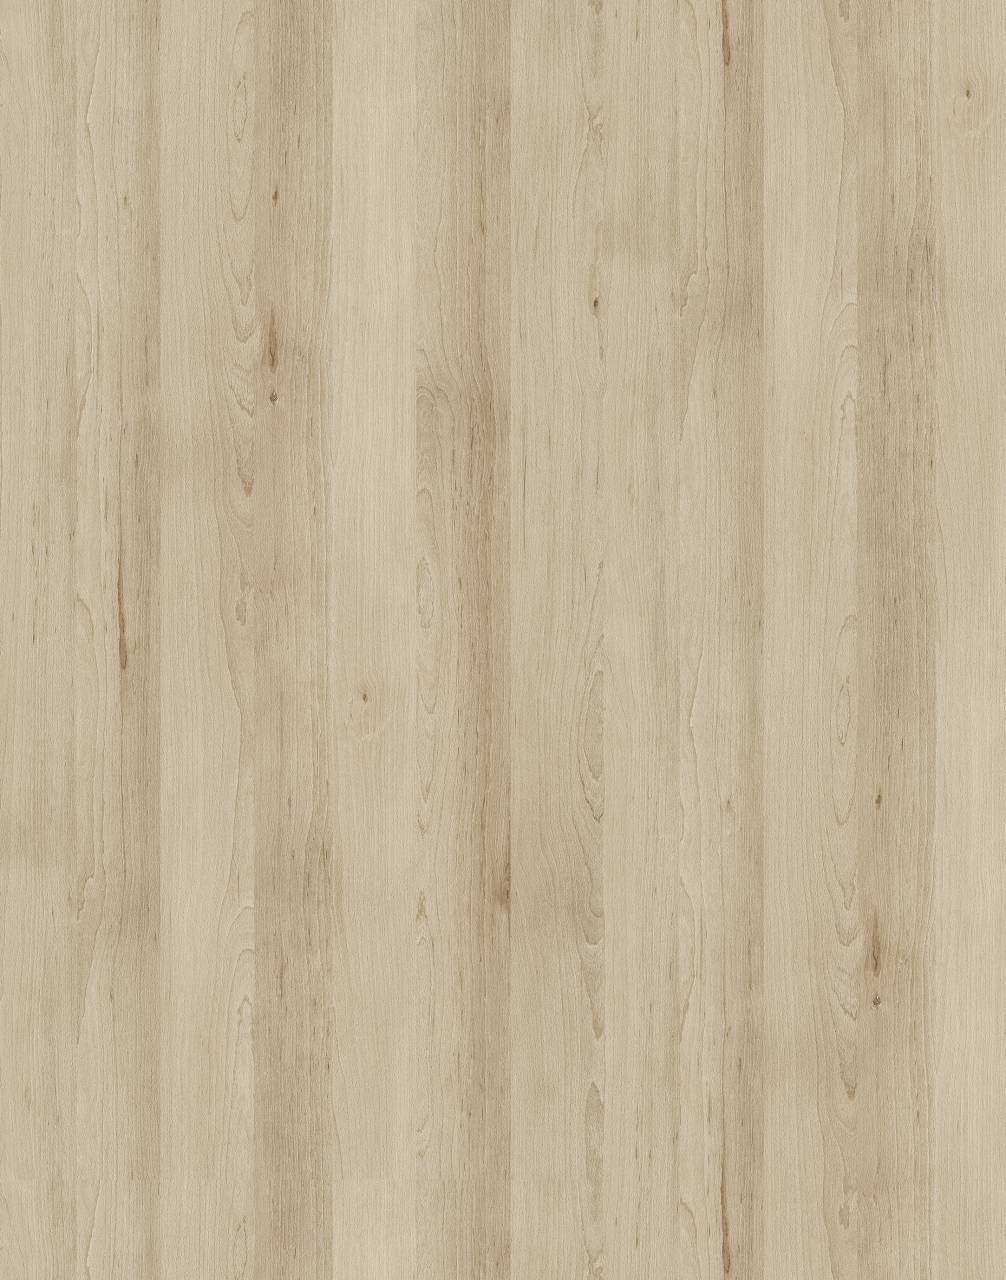 K013 Sand Artisan Beech (MF PB sample)